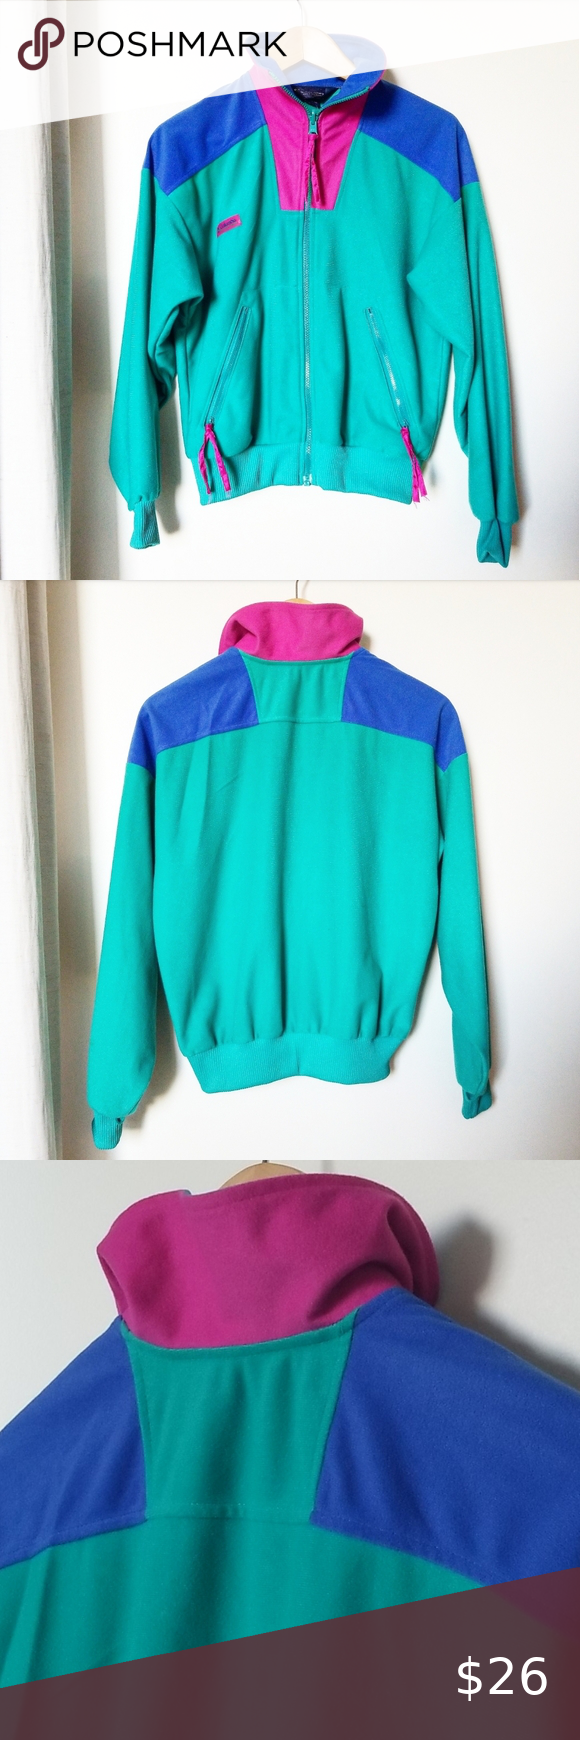 Columbia RARE Vintage Color Block Zip Up Jacket